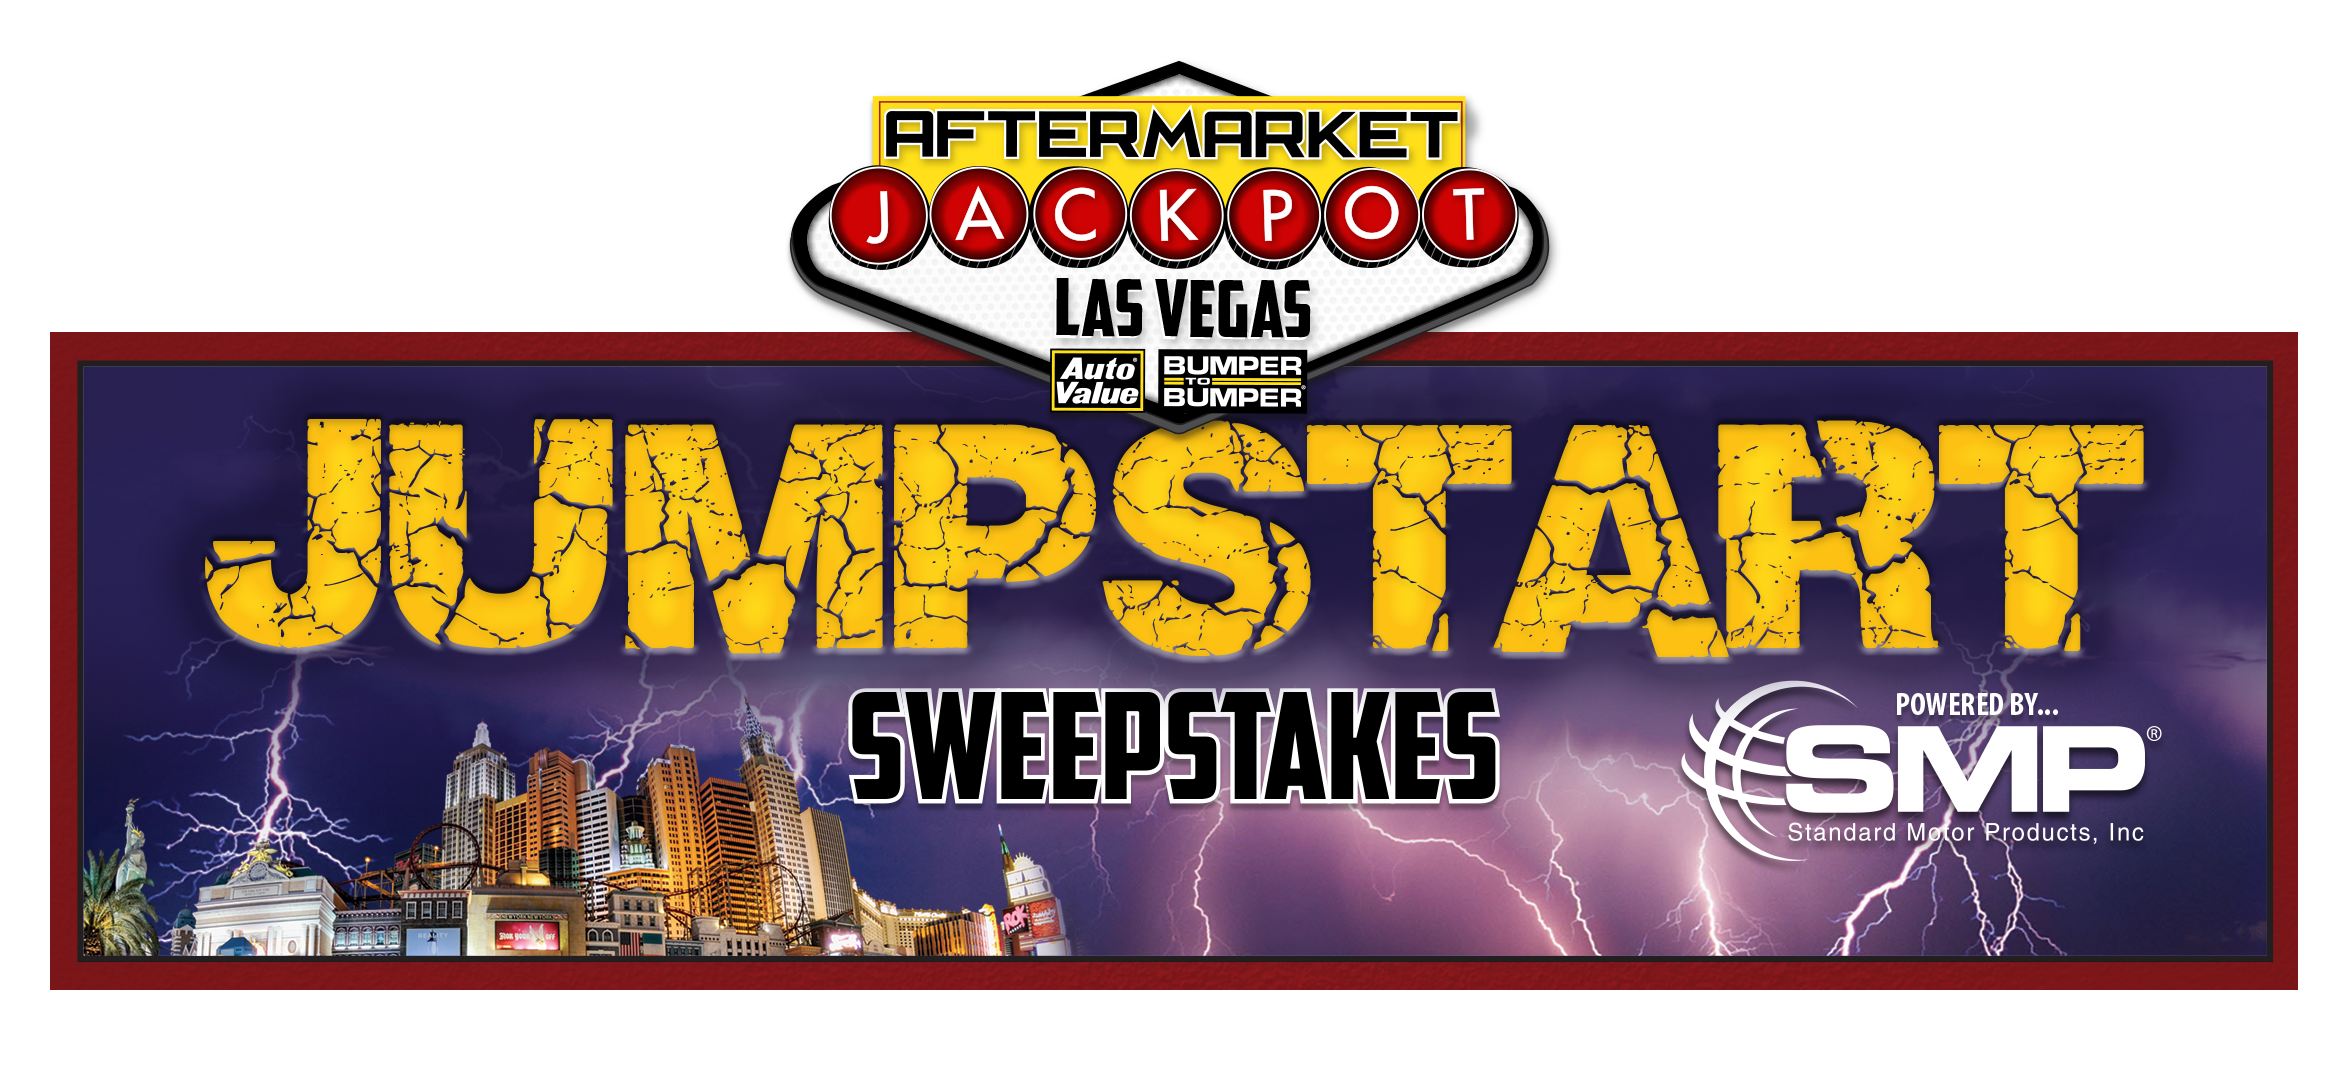 Auto Value & Bumper to Bumper Gear Up for Aftermarket Jackpot Jumpstart Sweepstakes